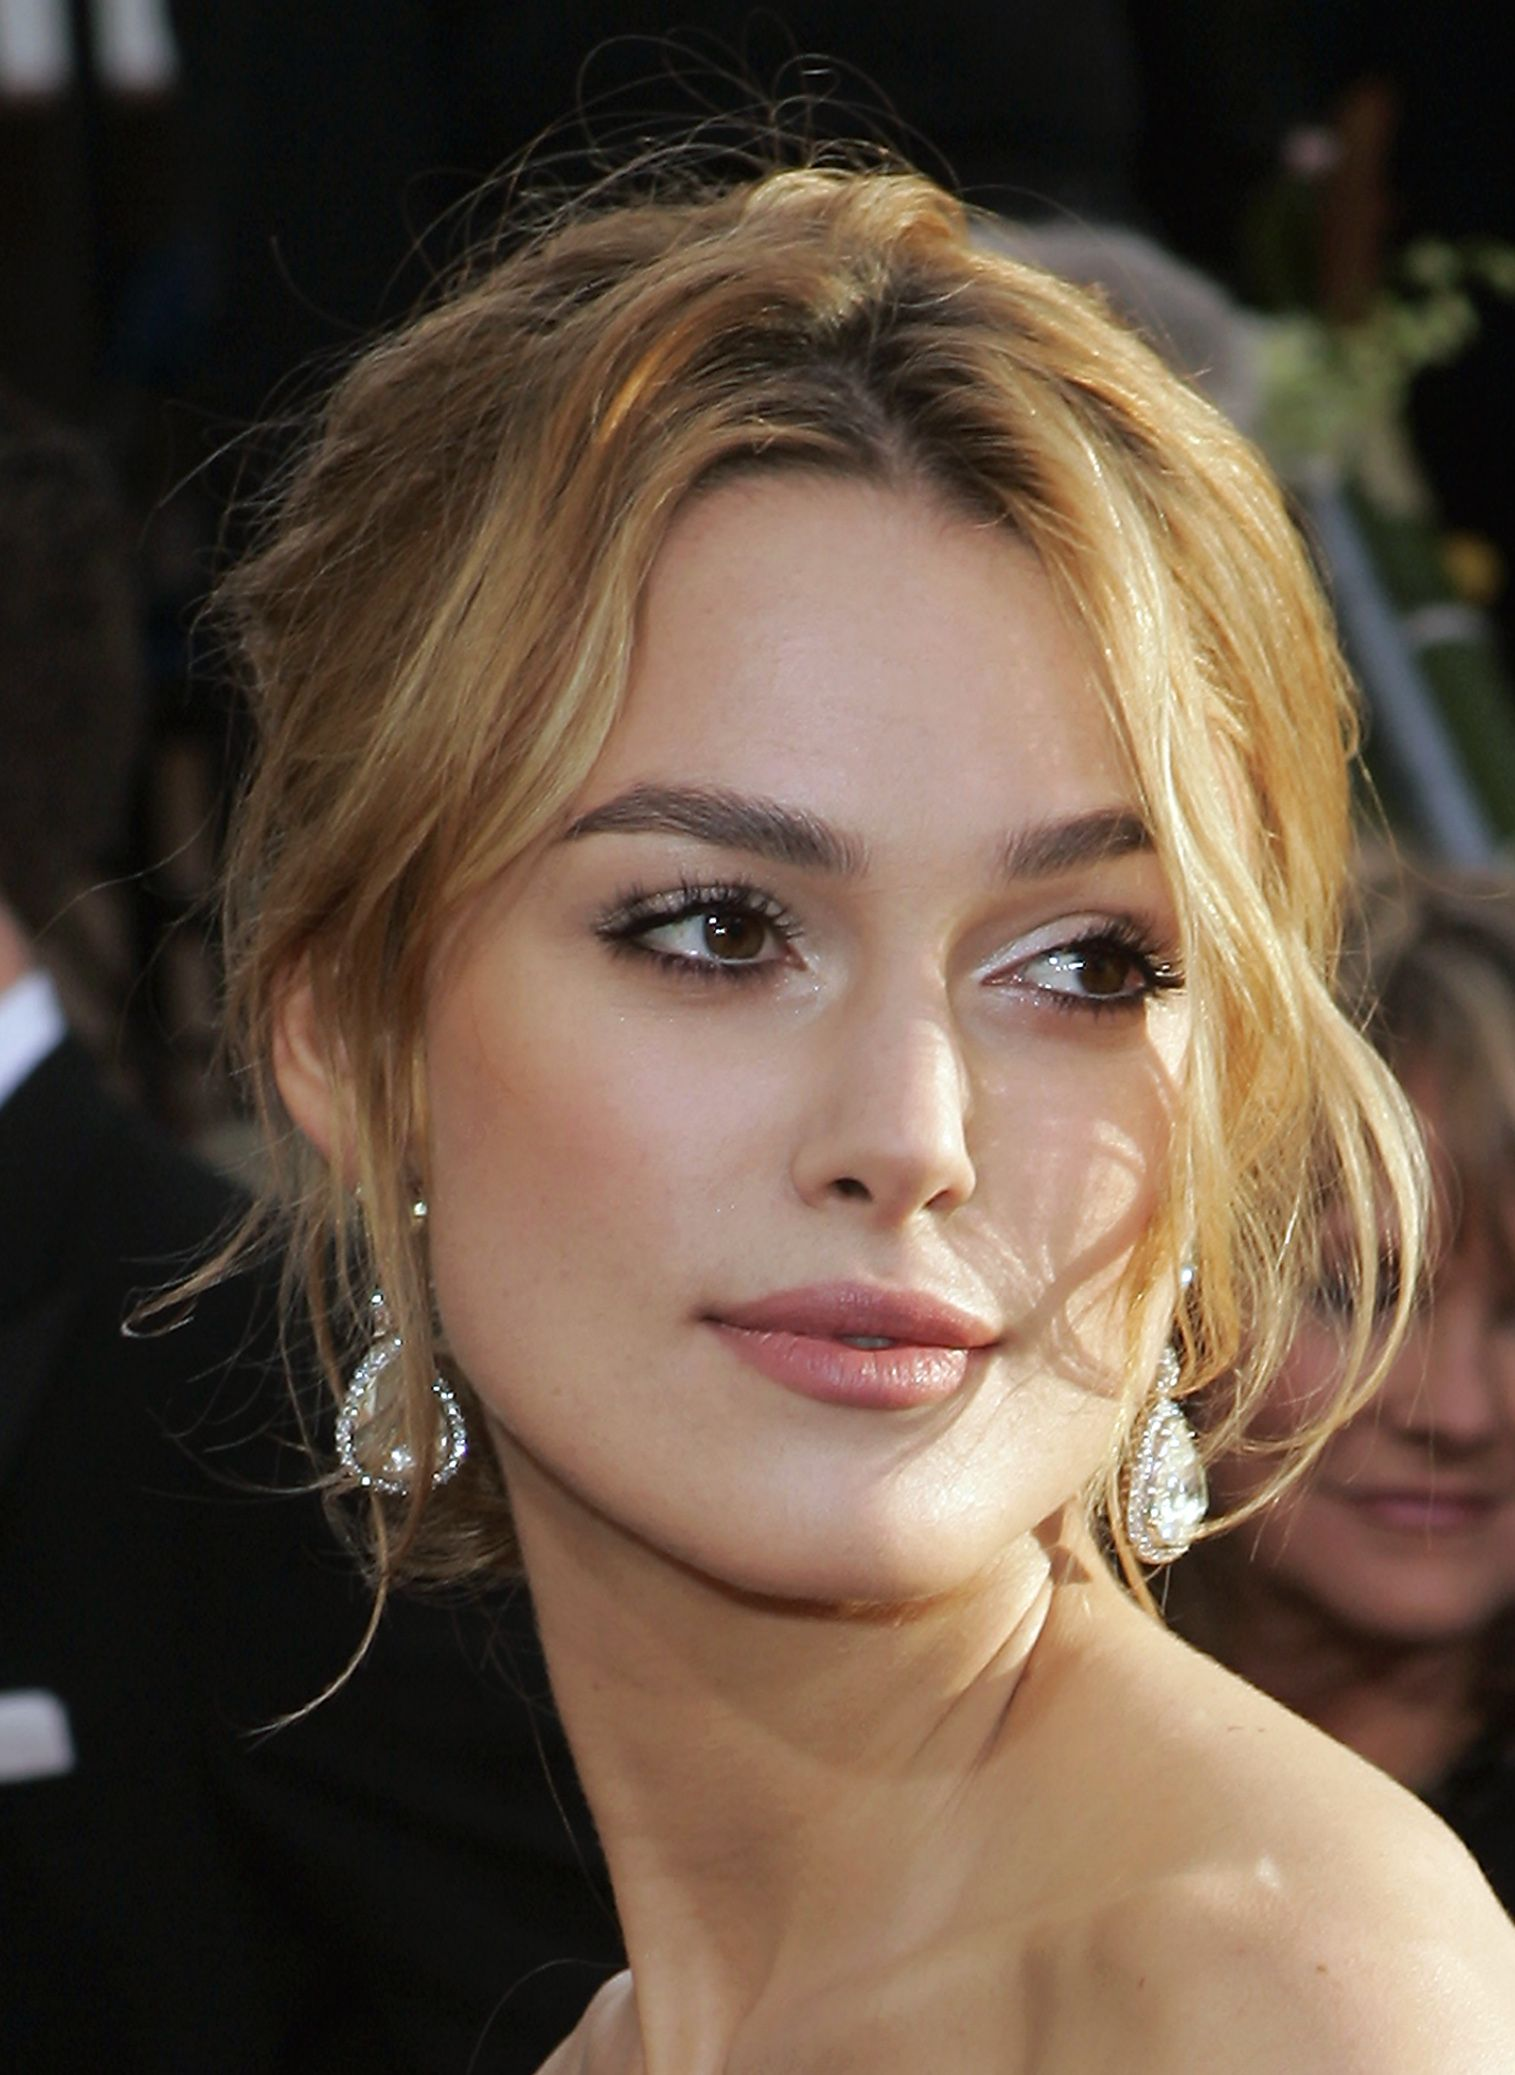 Kiera knightly sex scenes. Keira Knightley :: Celebrity ...